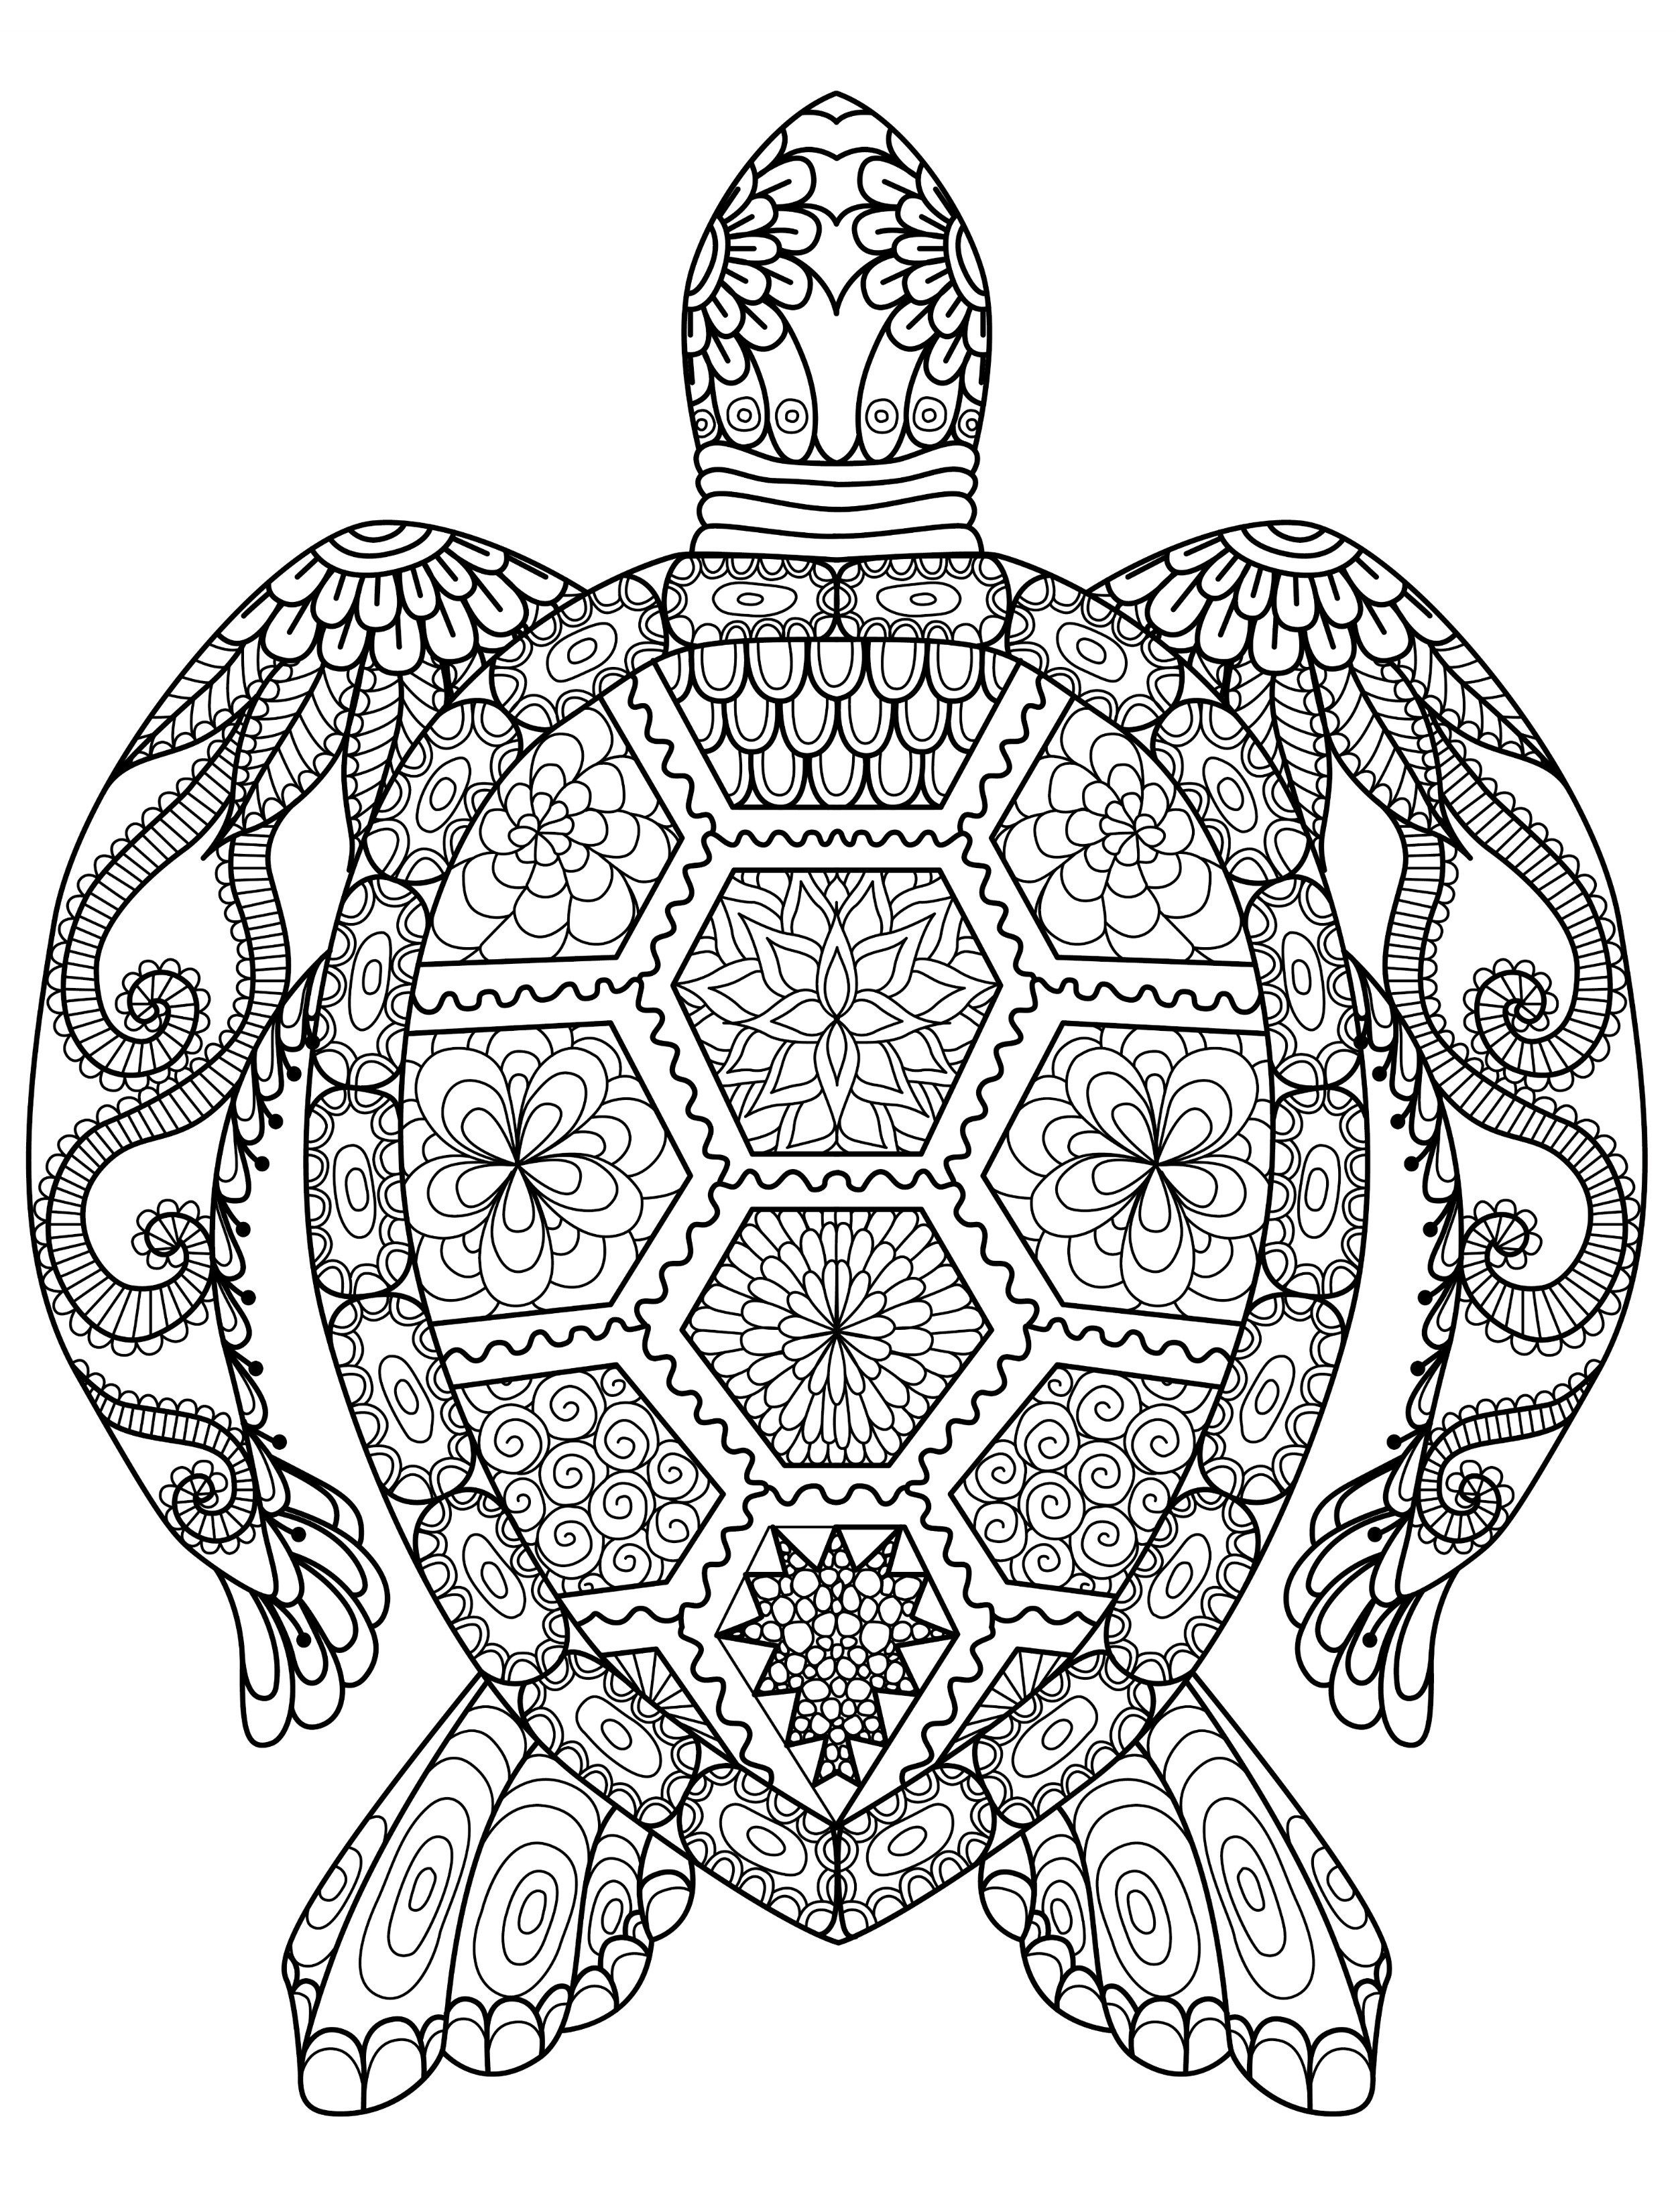 full size coloring pages 20 gorgeous free printable adult coloring pages turtle size full coloring pages